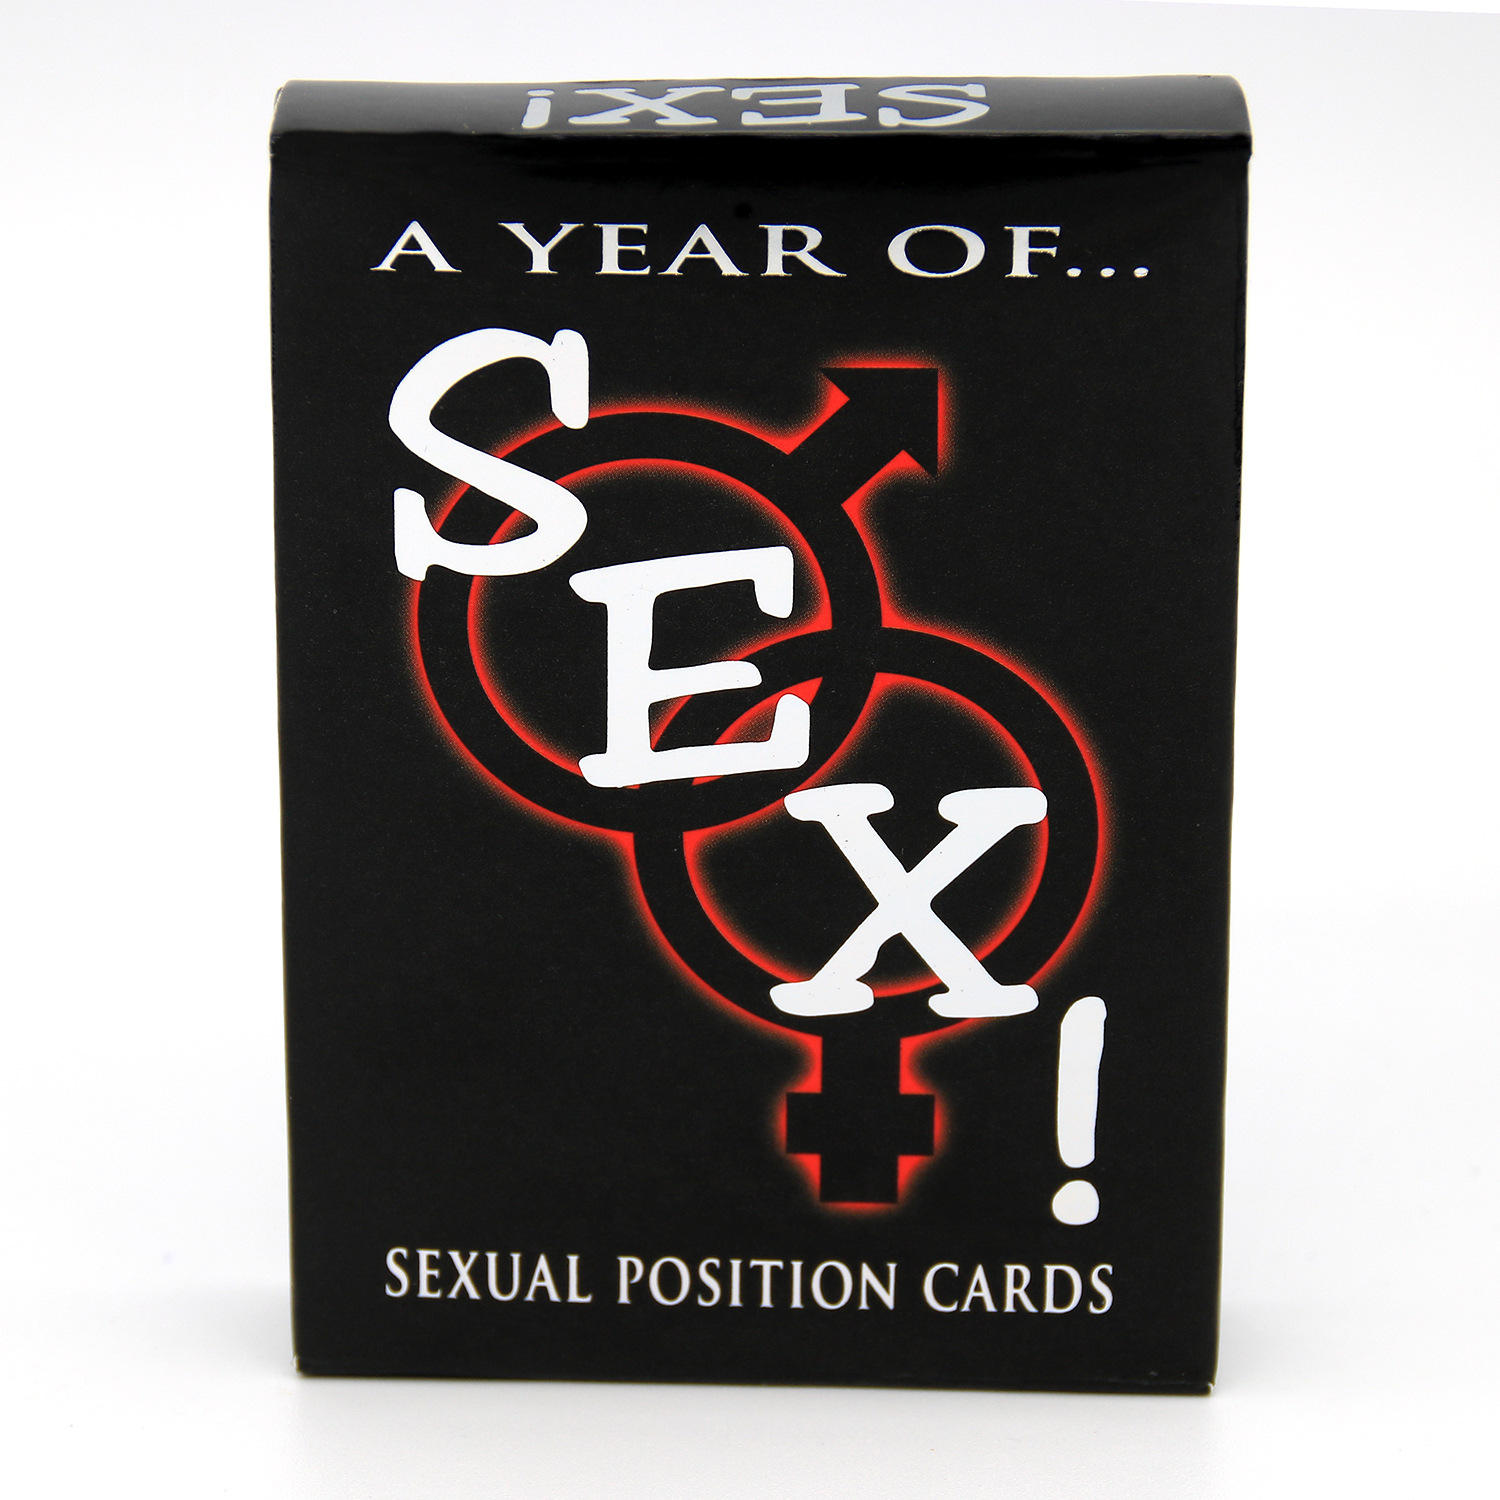 Nude Poker Sim Card Box Plastic Video Adult Play Game Hot Ax Sexi Custom Lcd Gift Greeting Sexy Girl Playing Cards